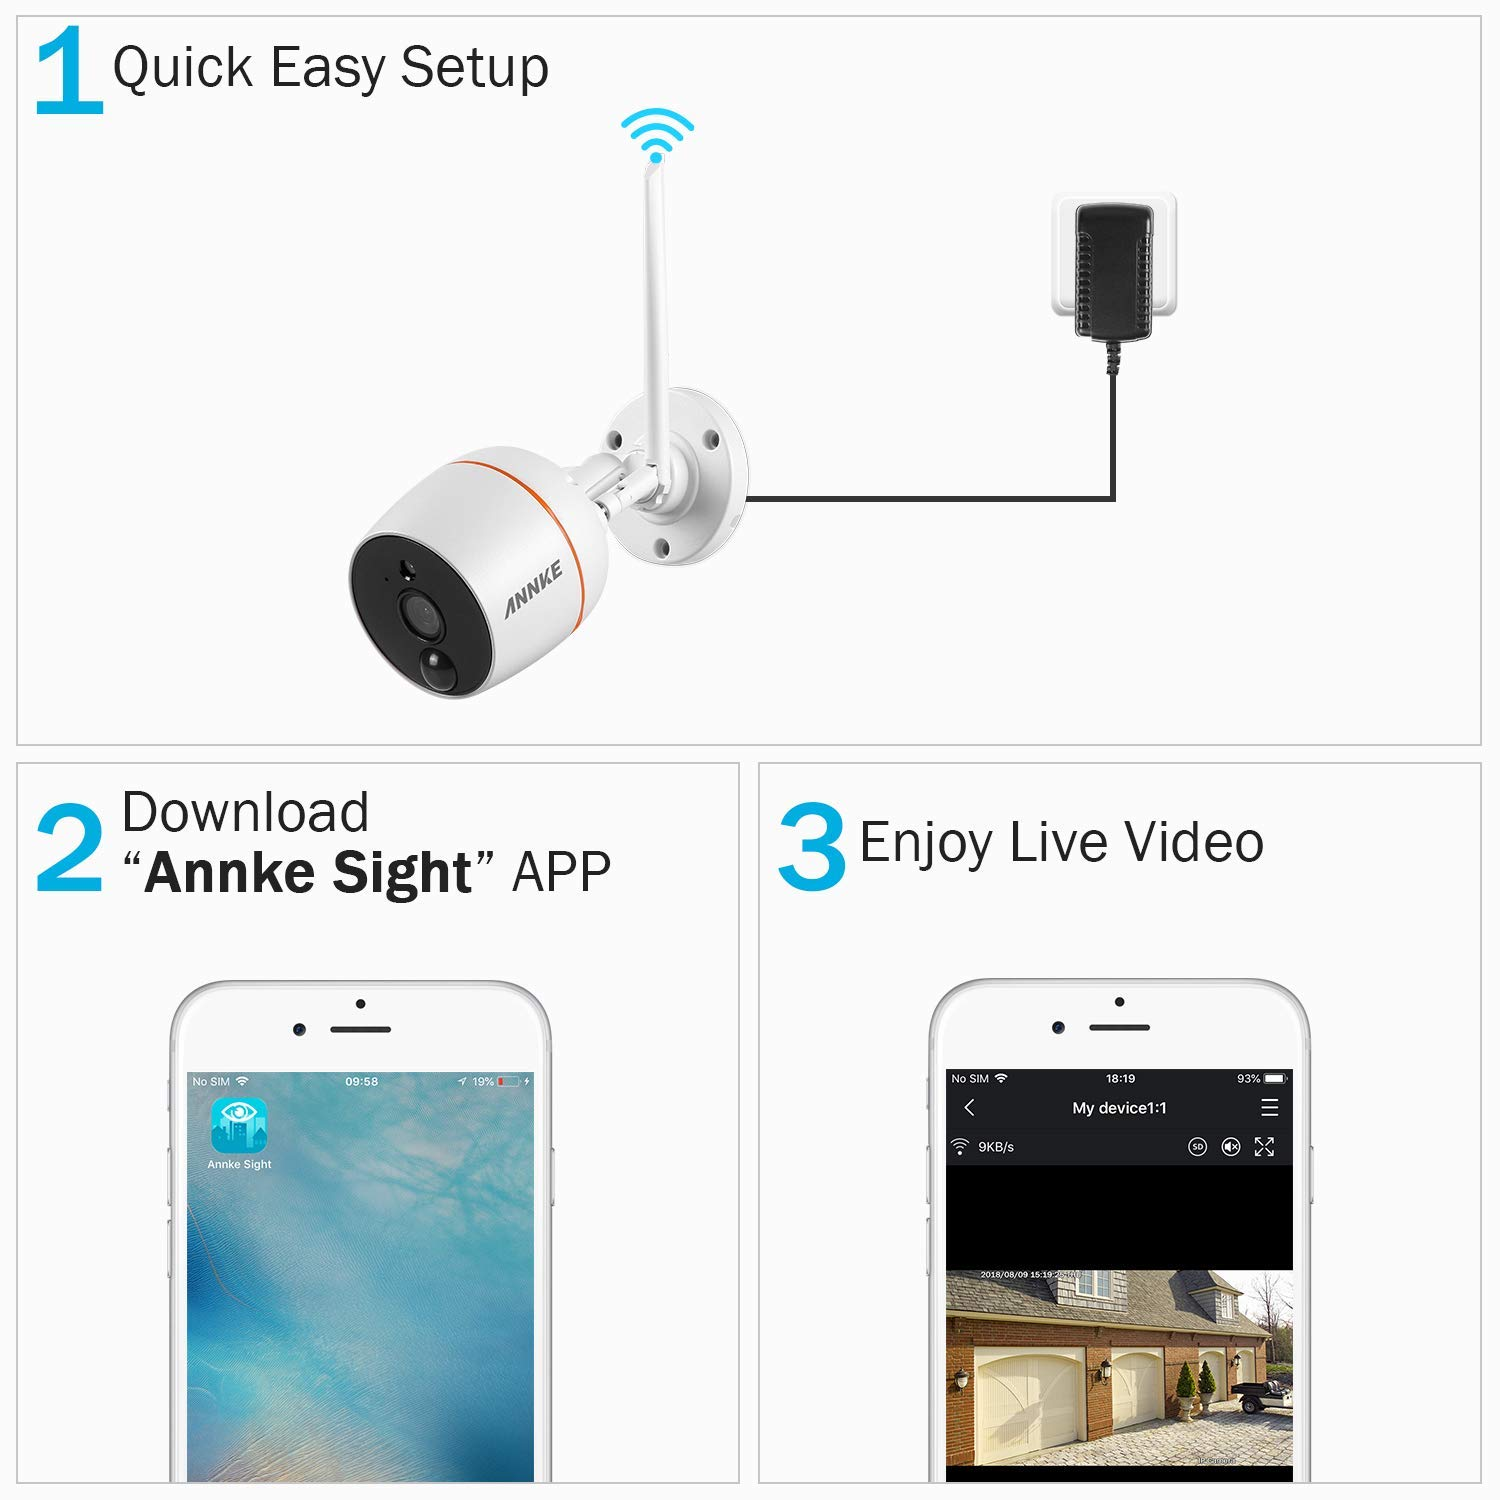 ANNKE 1080P Outdoor Security Camera, FHD Surveillance WiFi IP Camera with 2-Way Audio, IP66 Waterproof Wireless Bullet Camera, Smart IR Night Vision, PIR Motion Detection, Remote Access